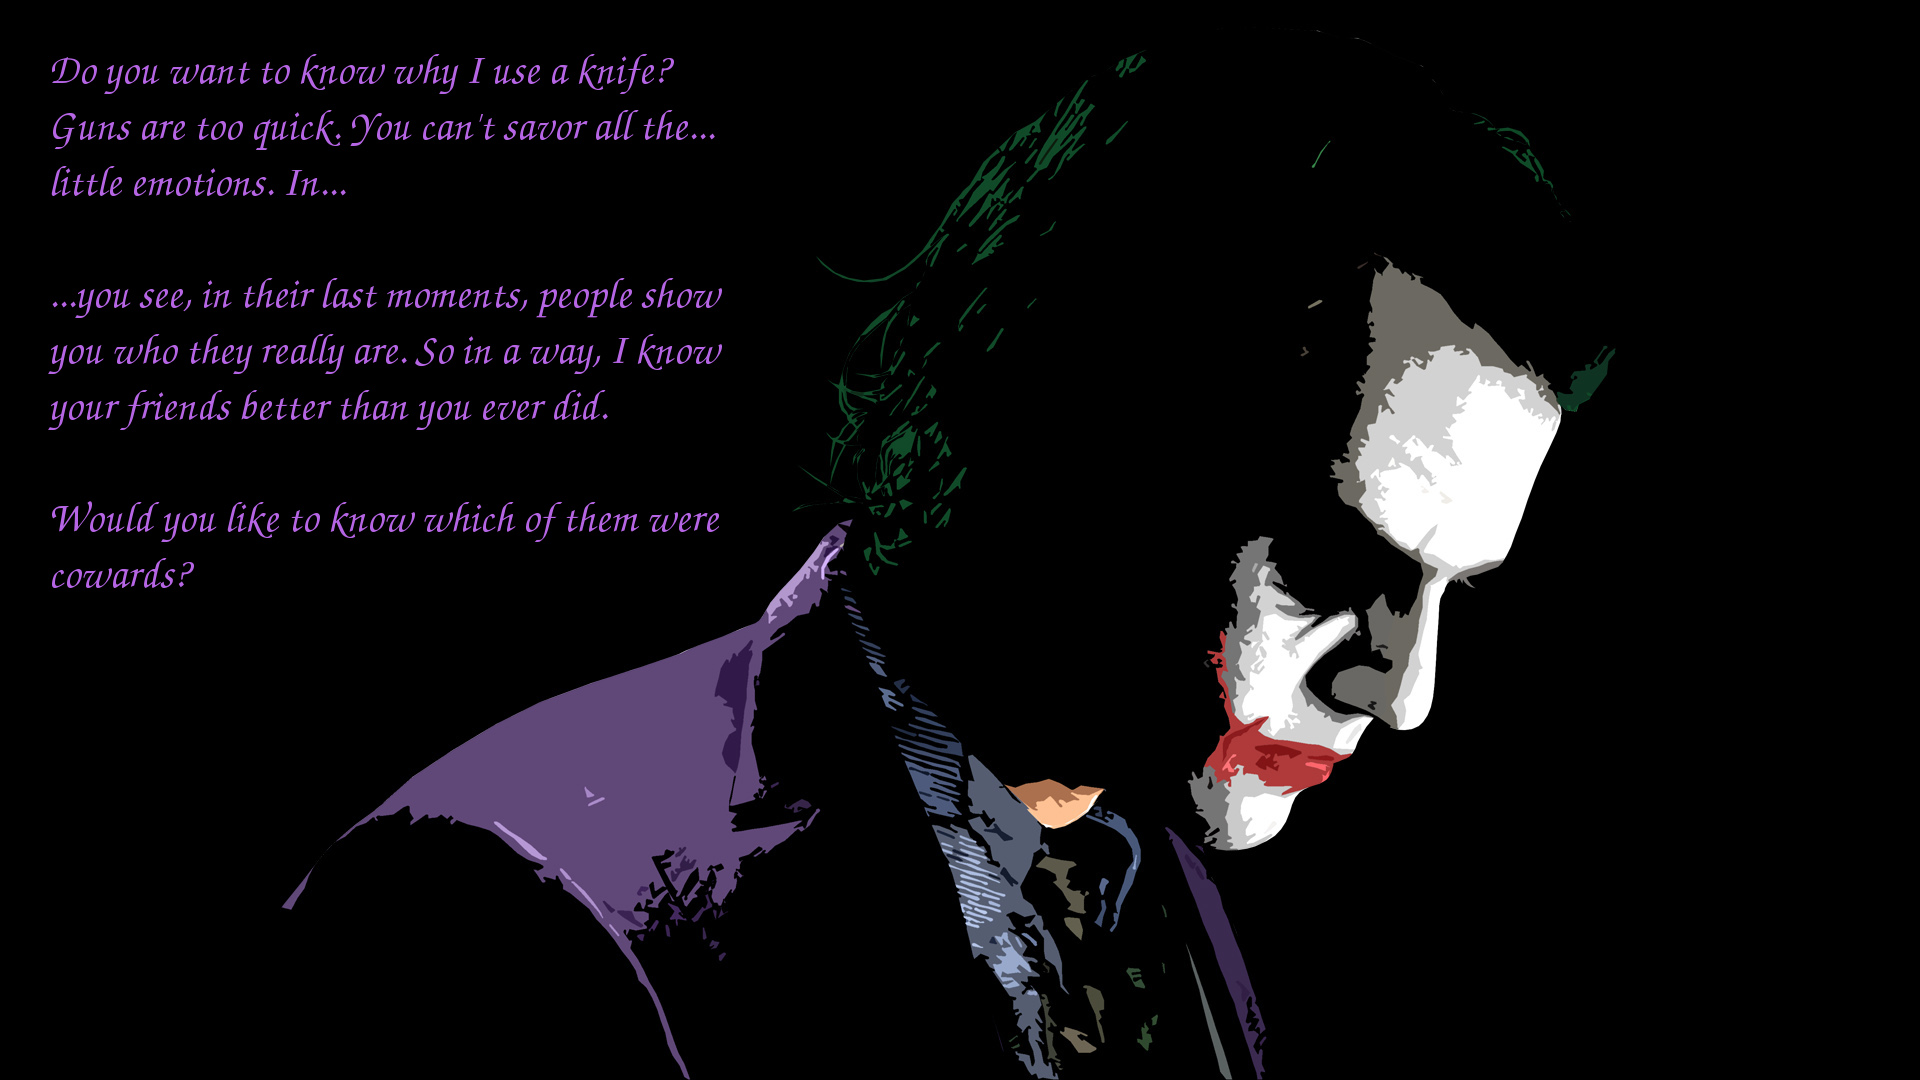 Batman Joker Quotes Mobile Wallpaper The Dark Knight Hd Wallpaper Background Image